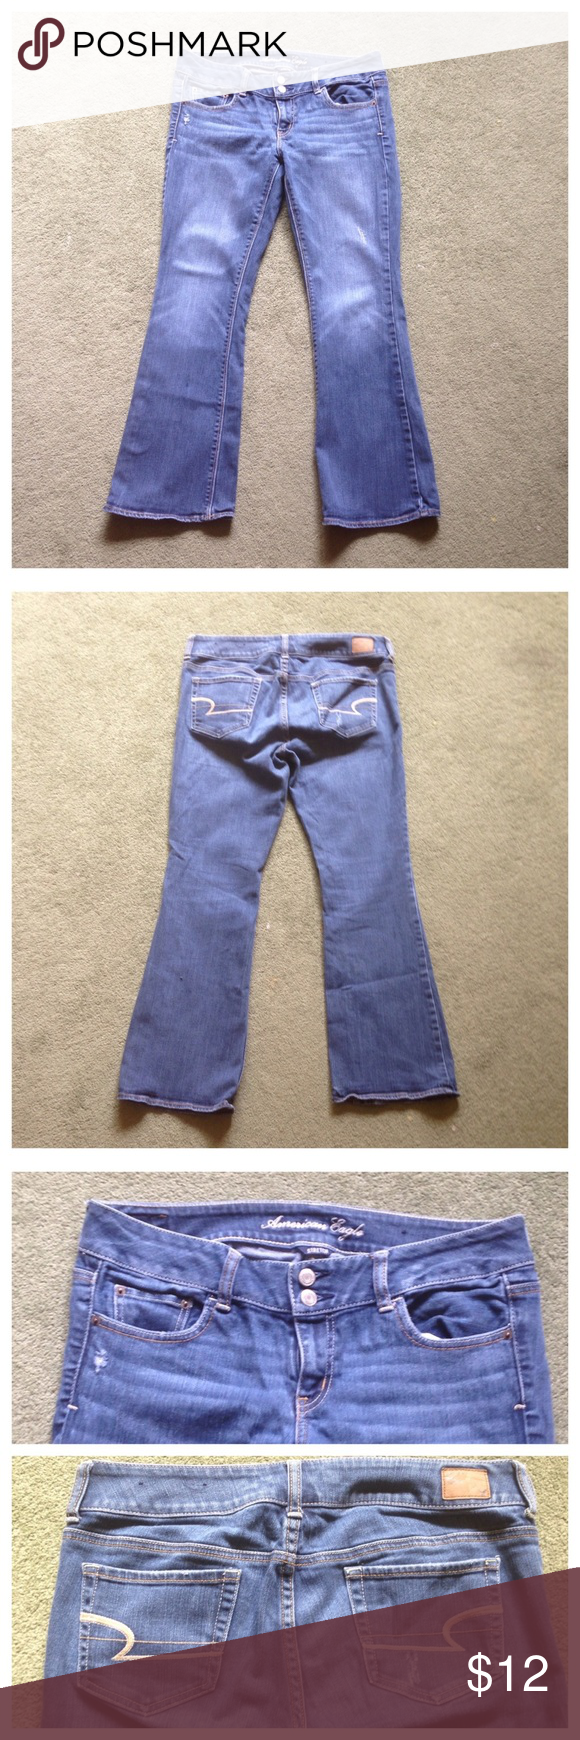 """American Eagle Size 10 Artist Boot Blue Jeans Excellent condition; Across waist - 17"""", Front rise - 8"""", Inseam - 29"""", Leg opening - 9.5"""" American Eagle Outfitters Jeans Boot Cut"""